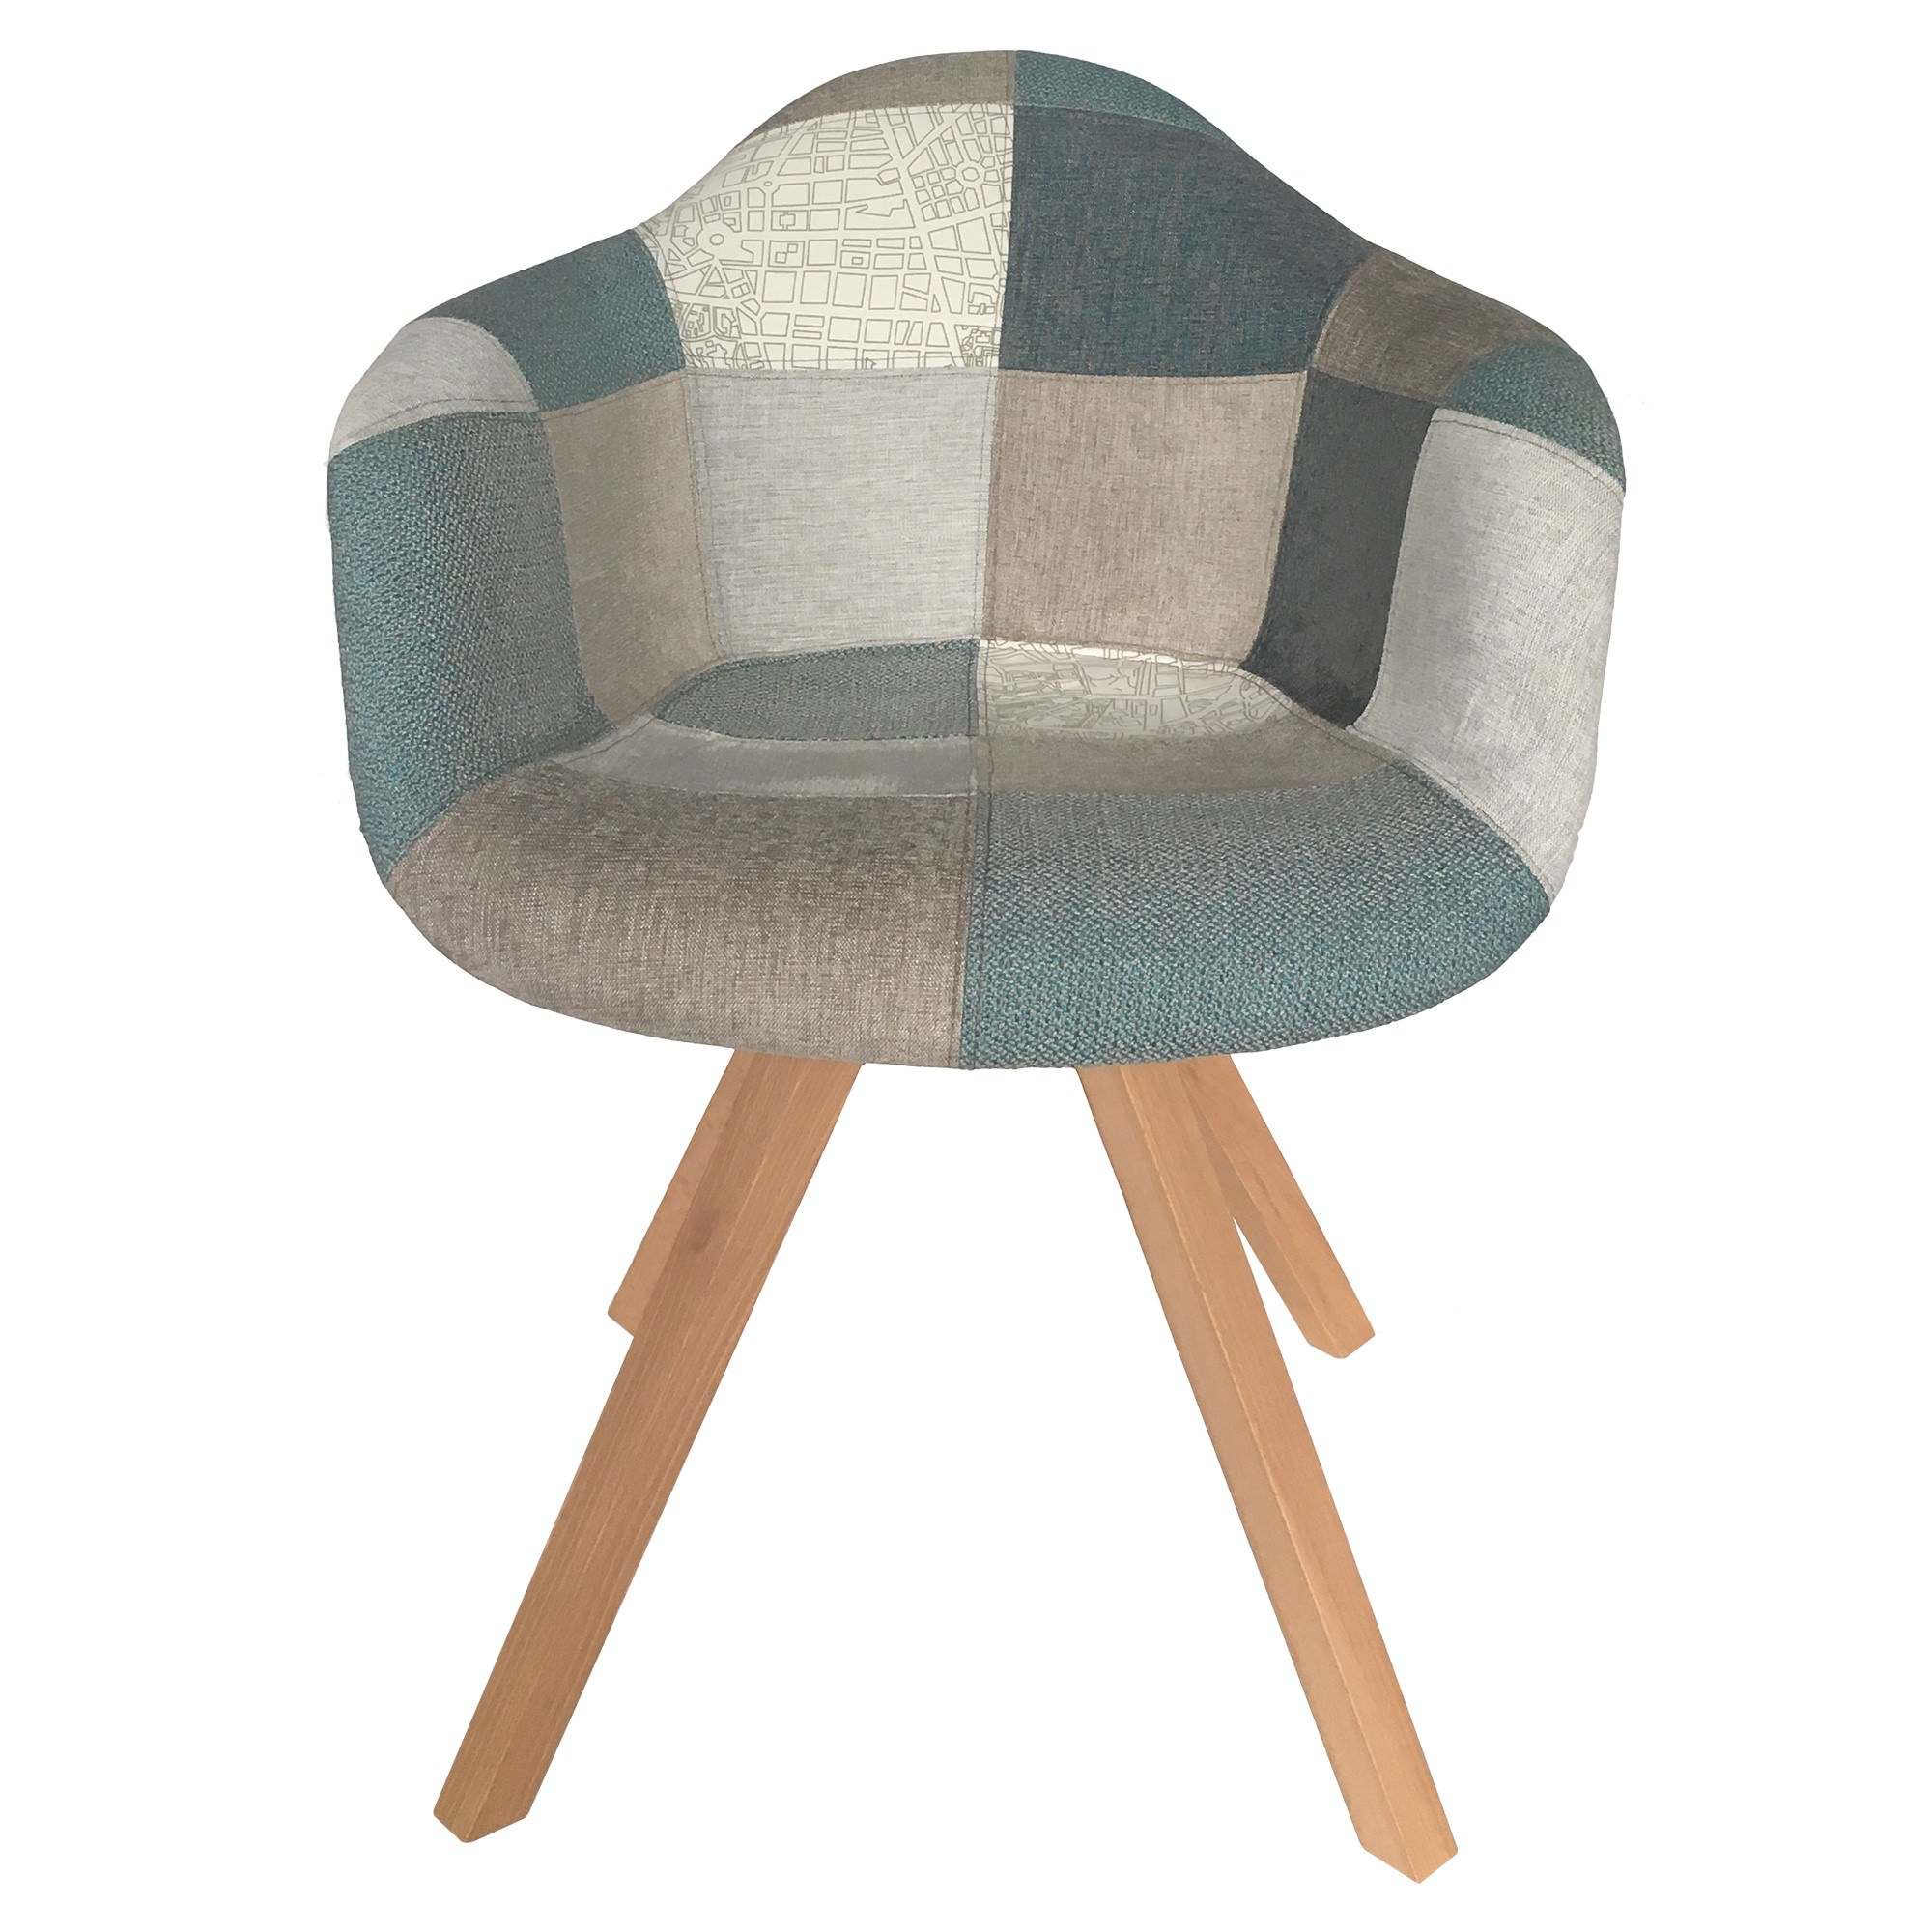 Dalbert Patchwork Fabric Tub Chair, Teal / Grey